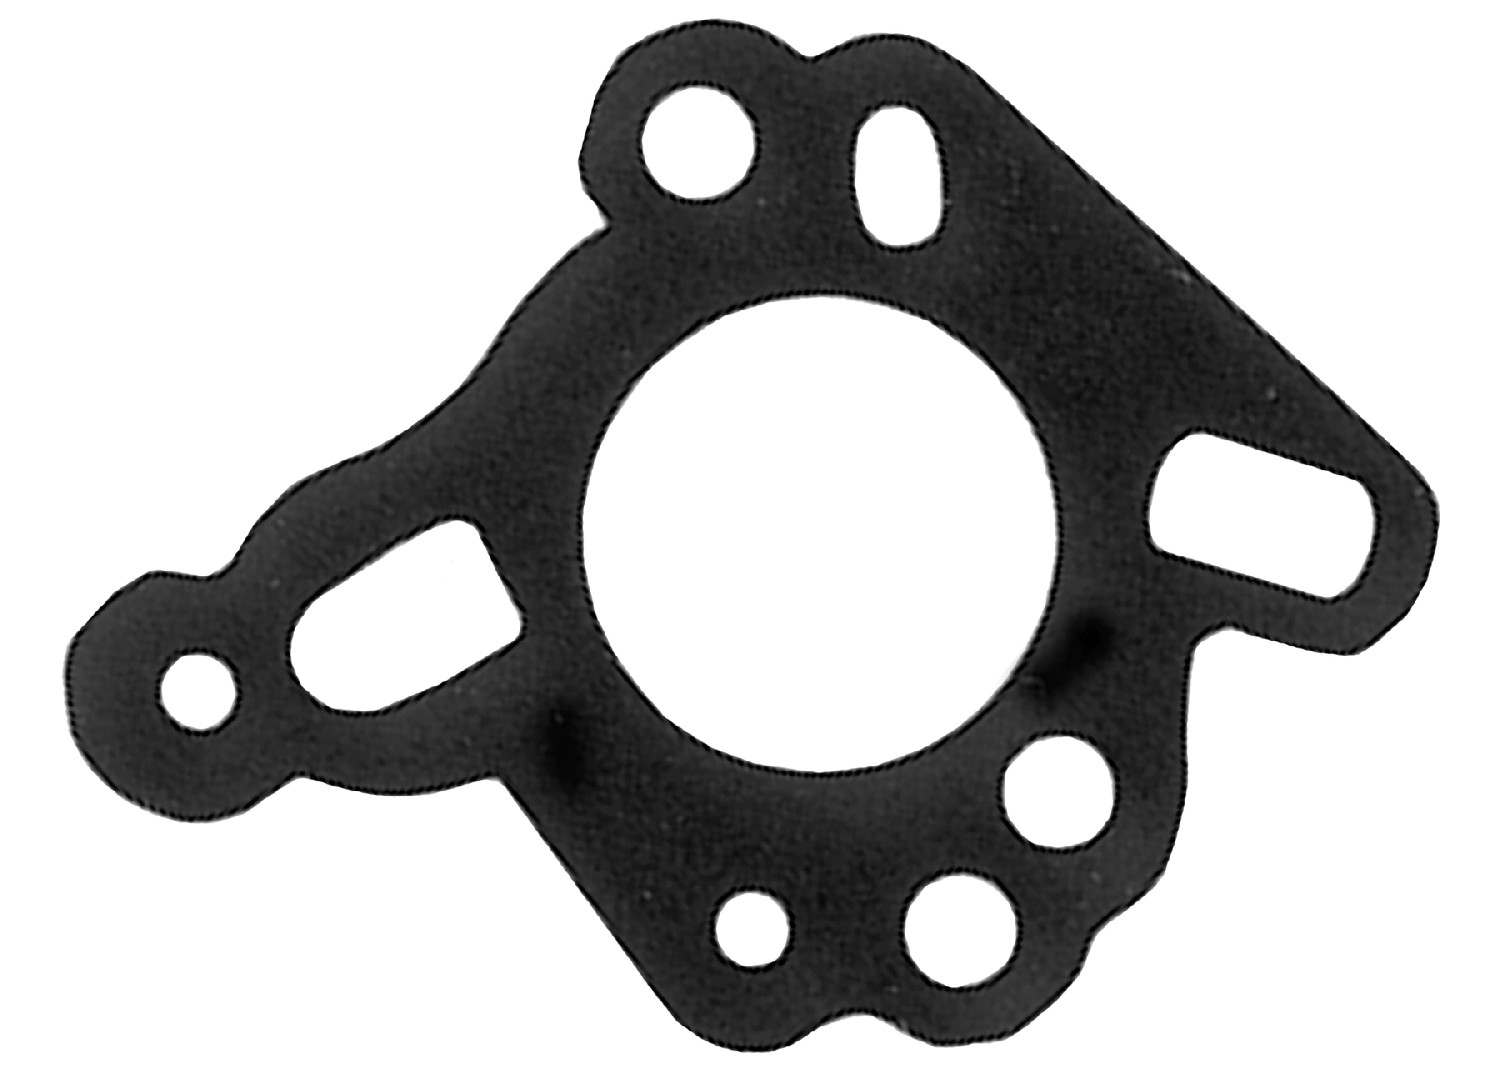 ACDELCO PROFESSIONAL - Engine Coolant Thermostat Housing Gasket - DCC 12G6